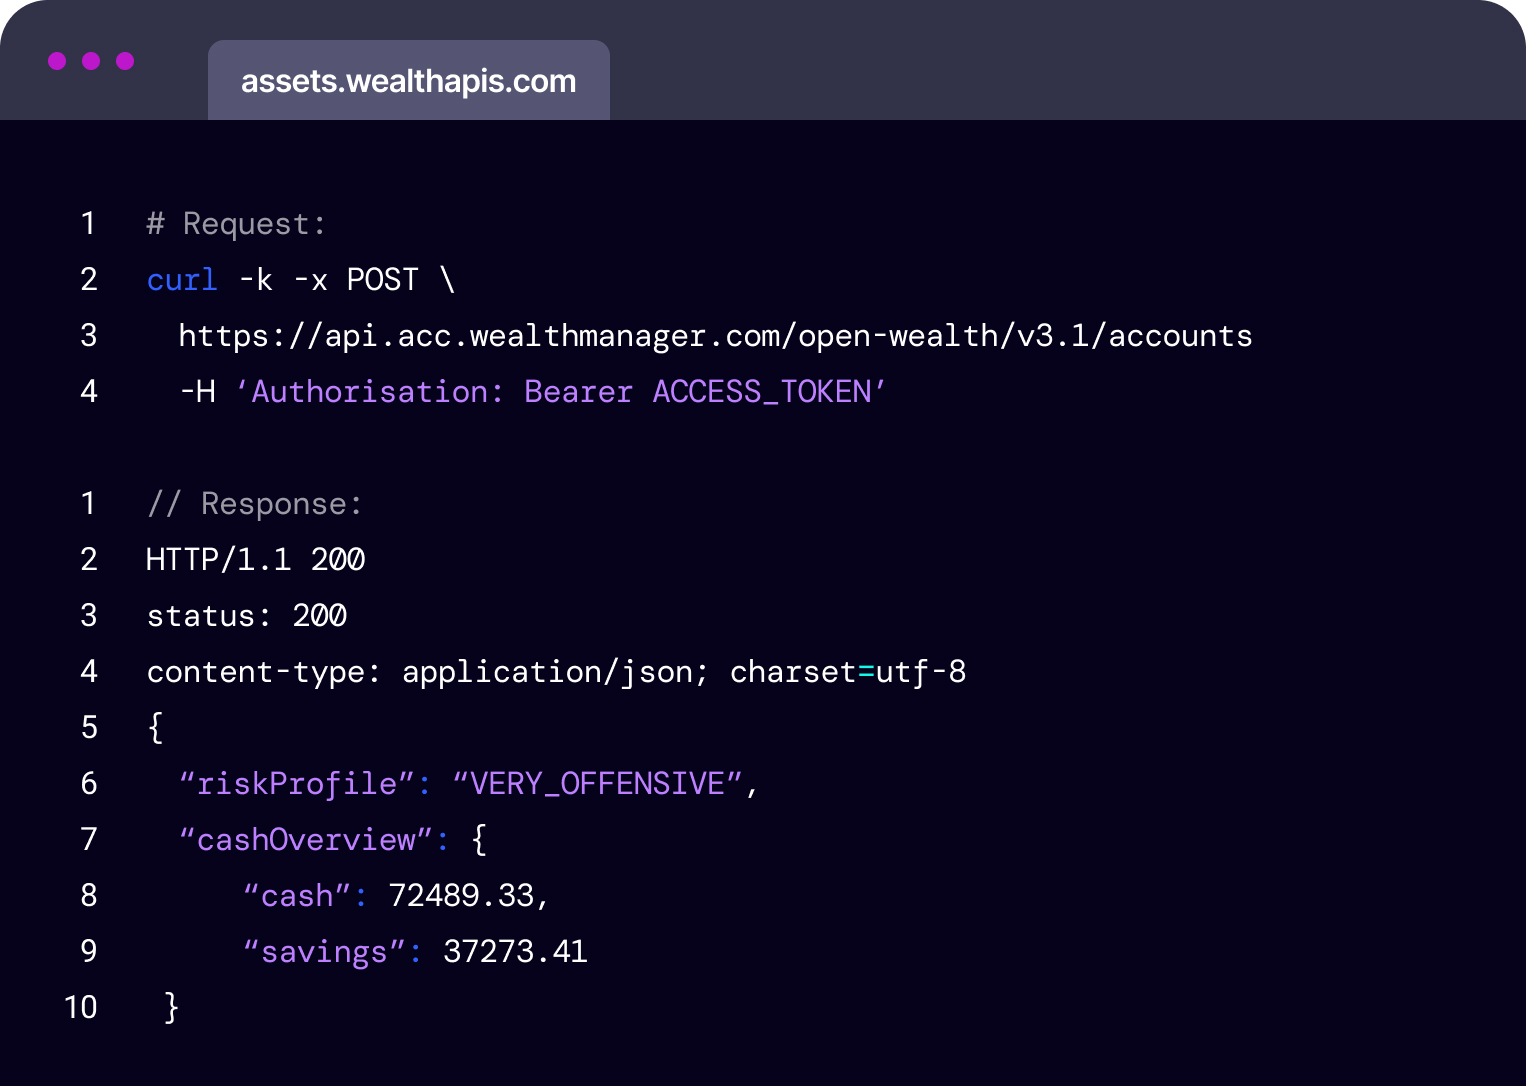 Code snippet demonstrating the data for a wealth management customer being requested via an API call